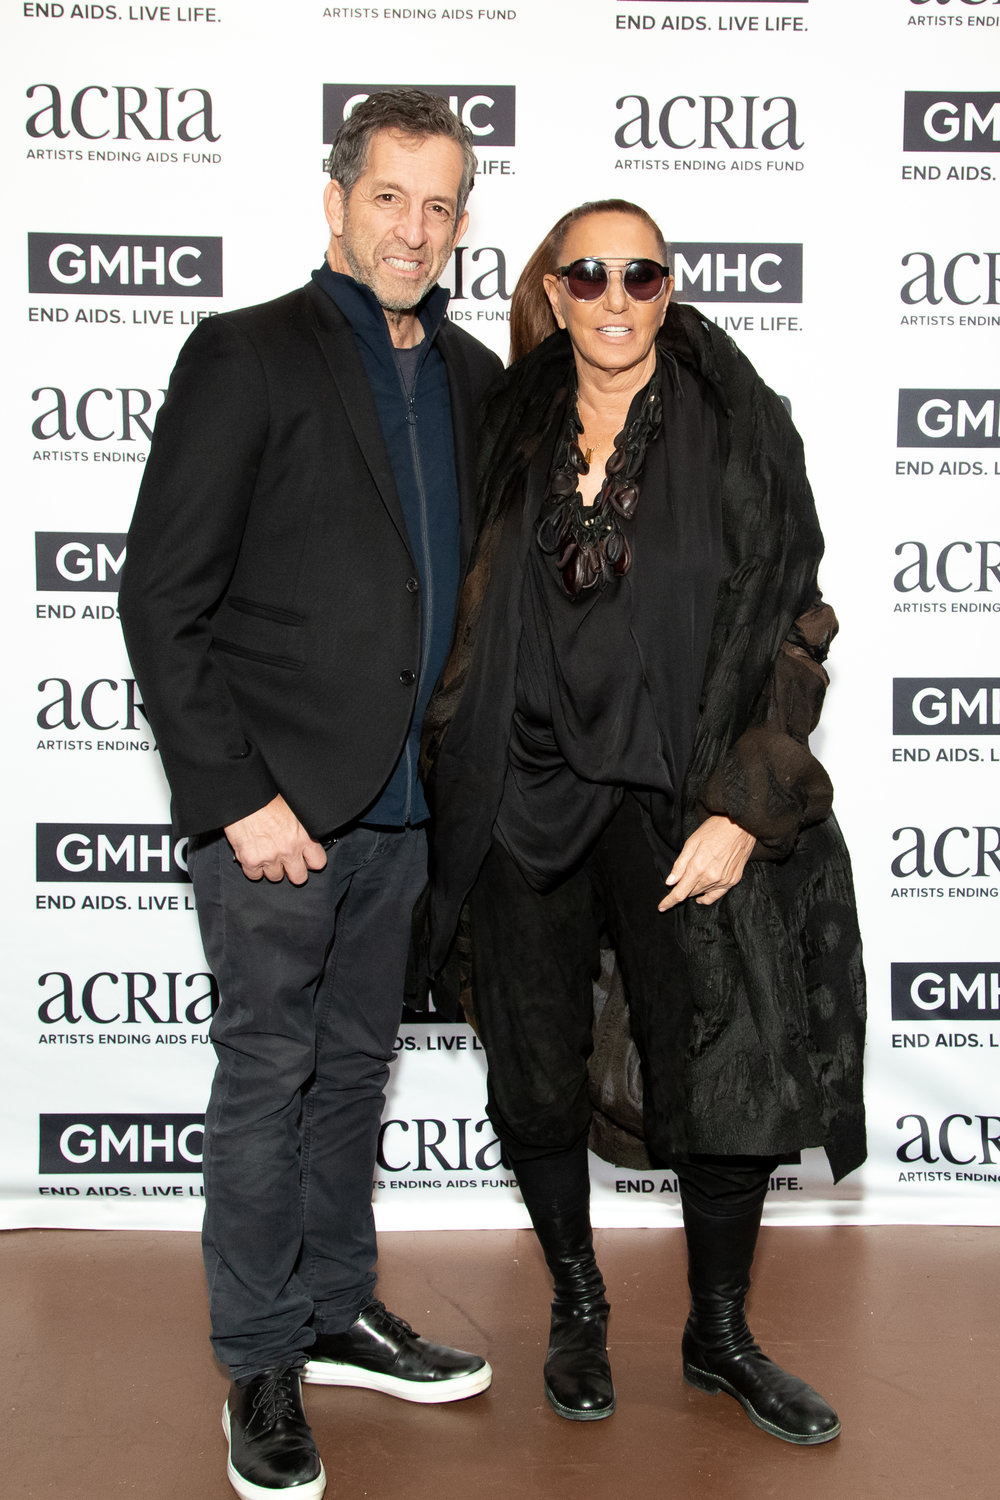 Kenneth Cole & Donna Karan, Photo Courtesy of BFA Images